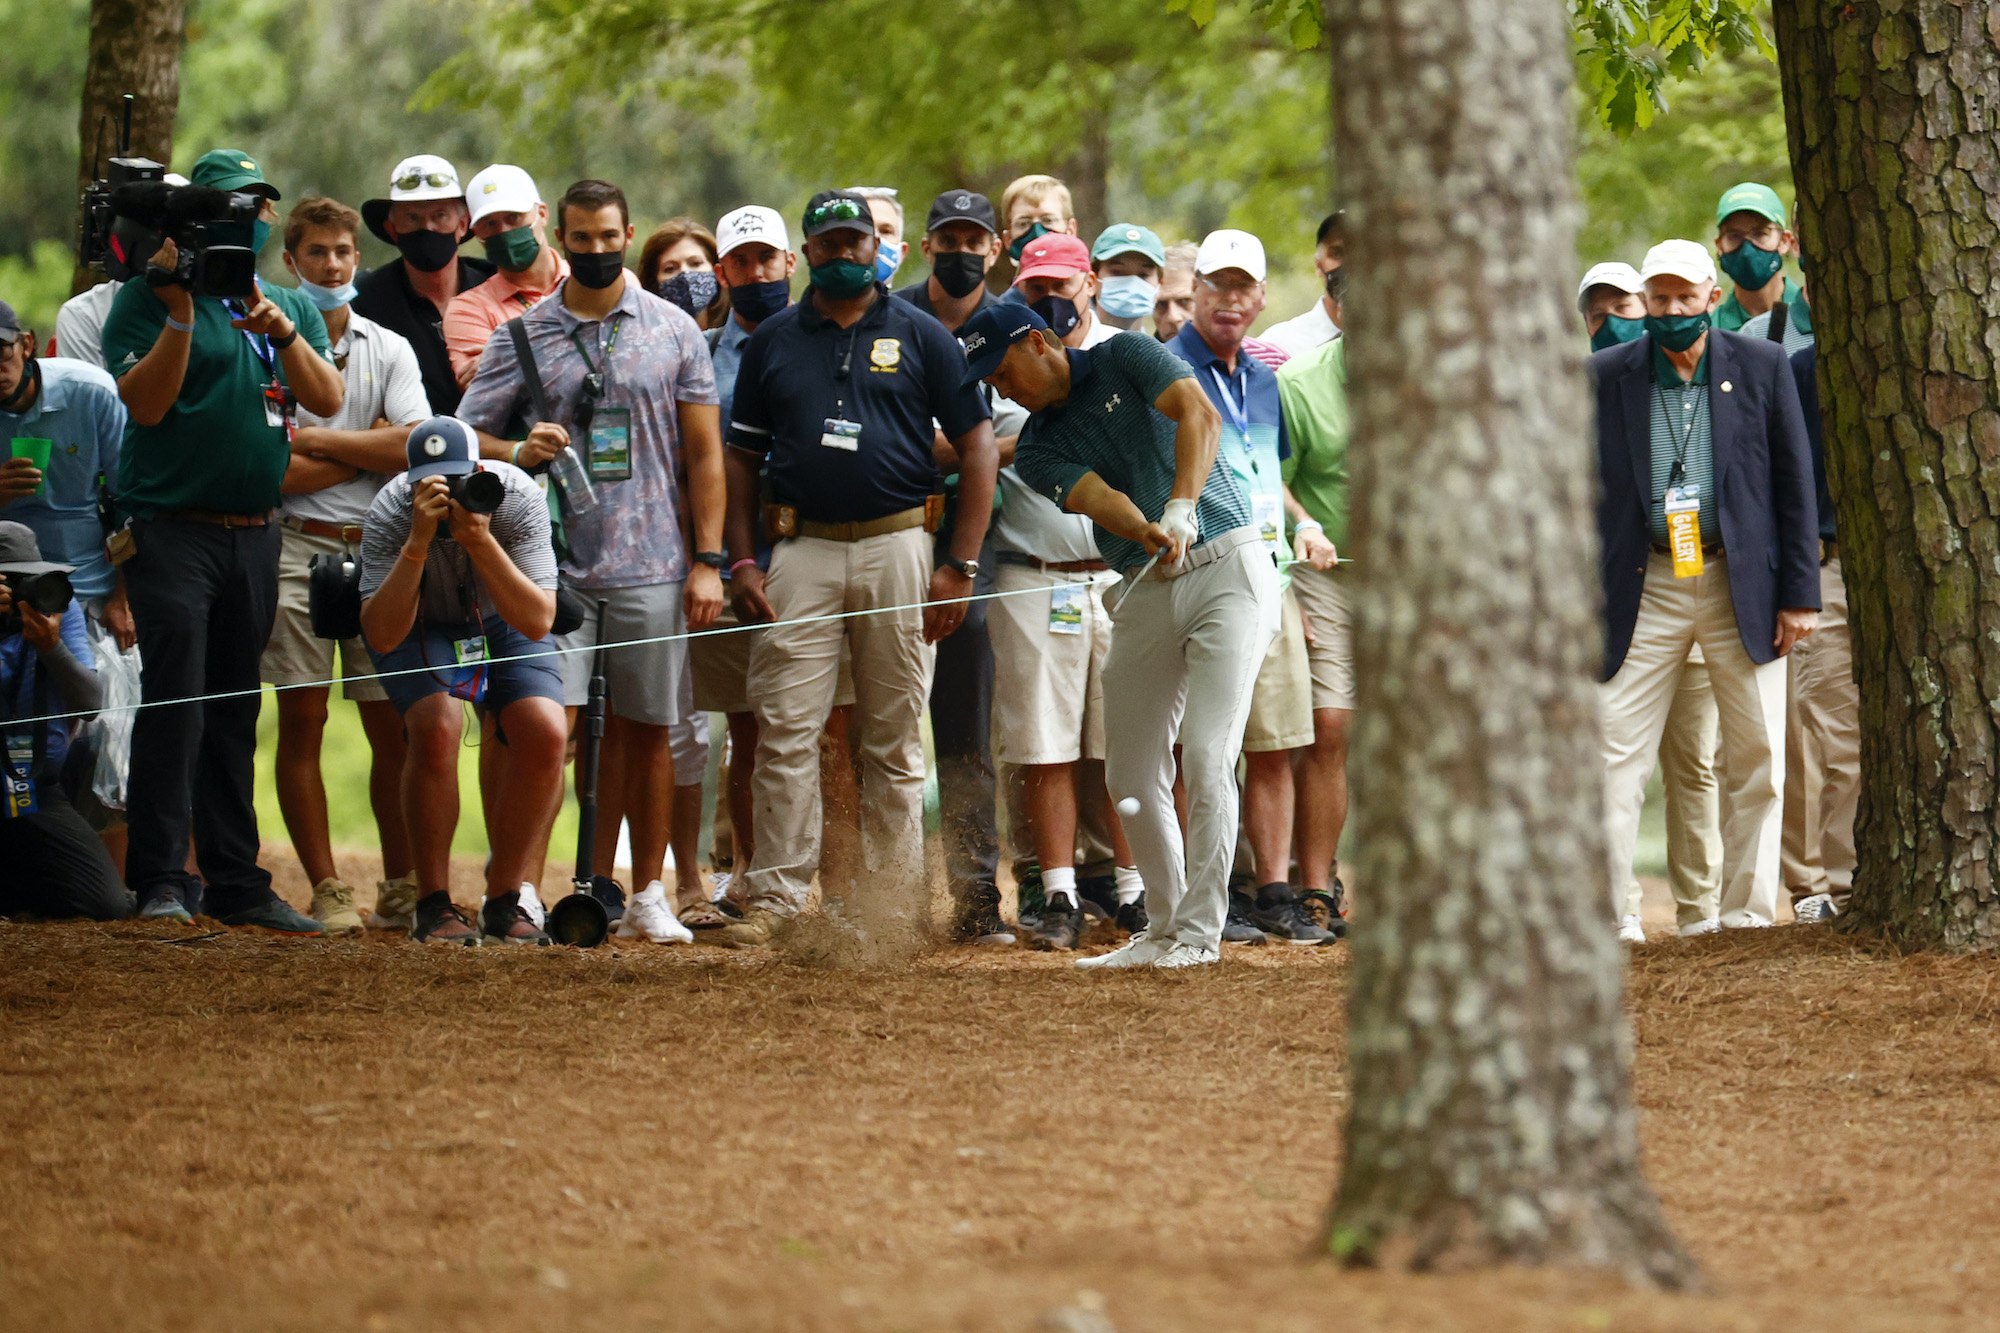 2021 Masters Tournament: Round 1 - Off the Pine Straw on No. 13